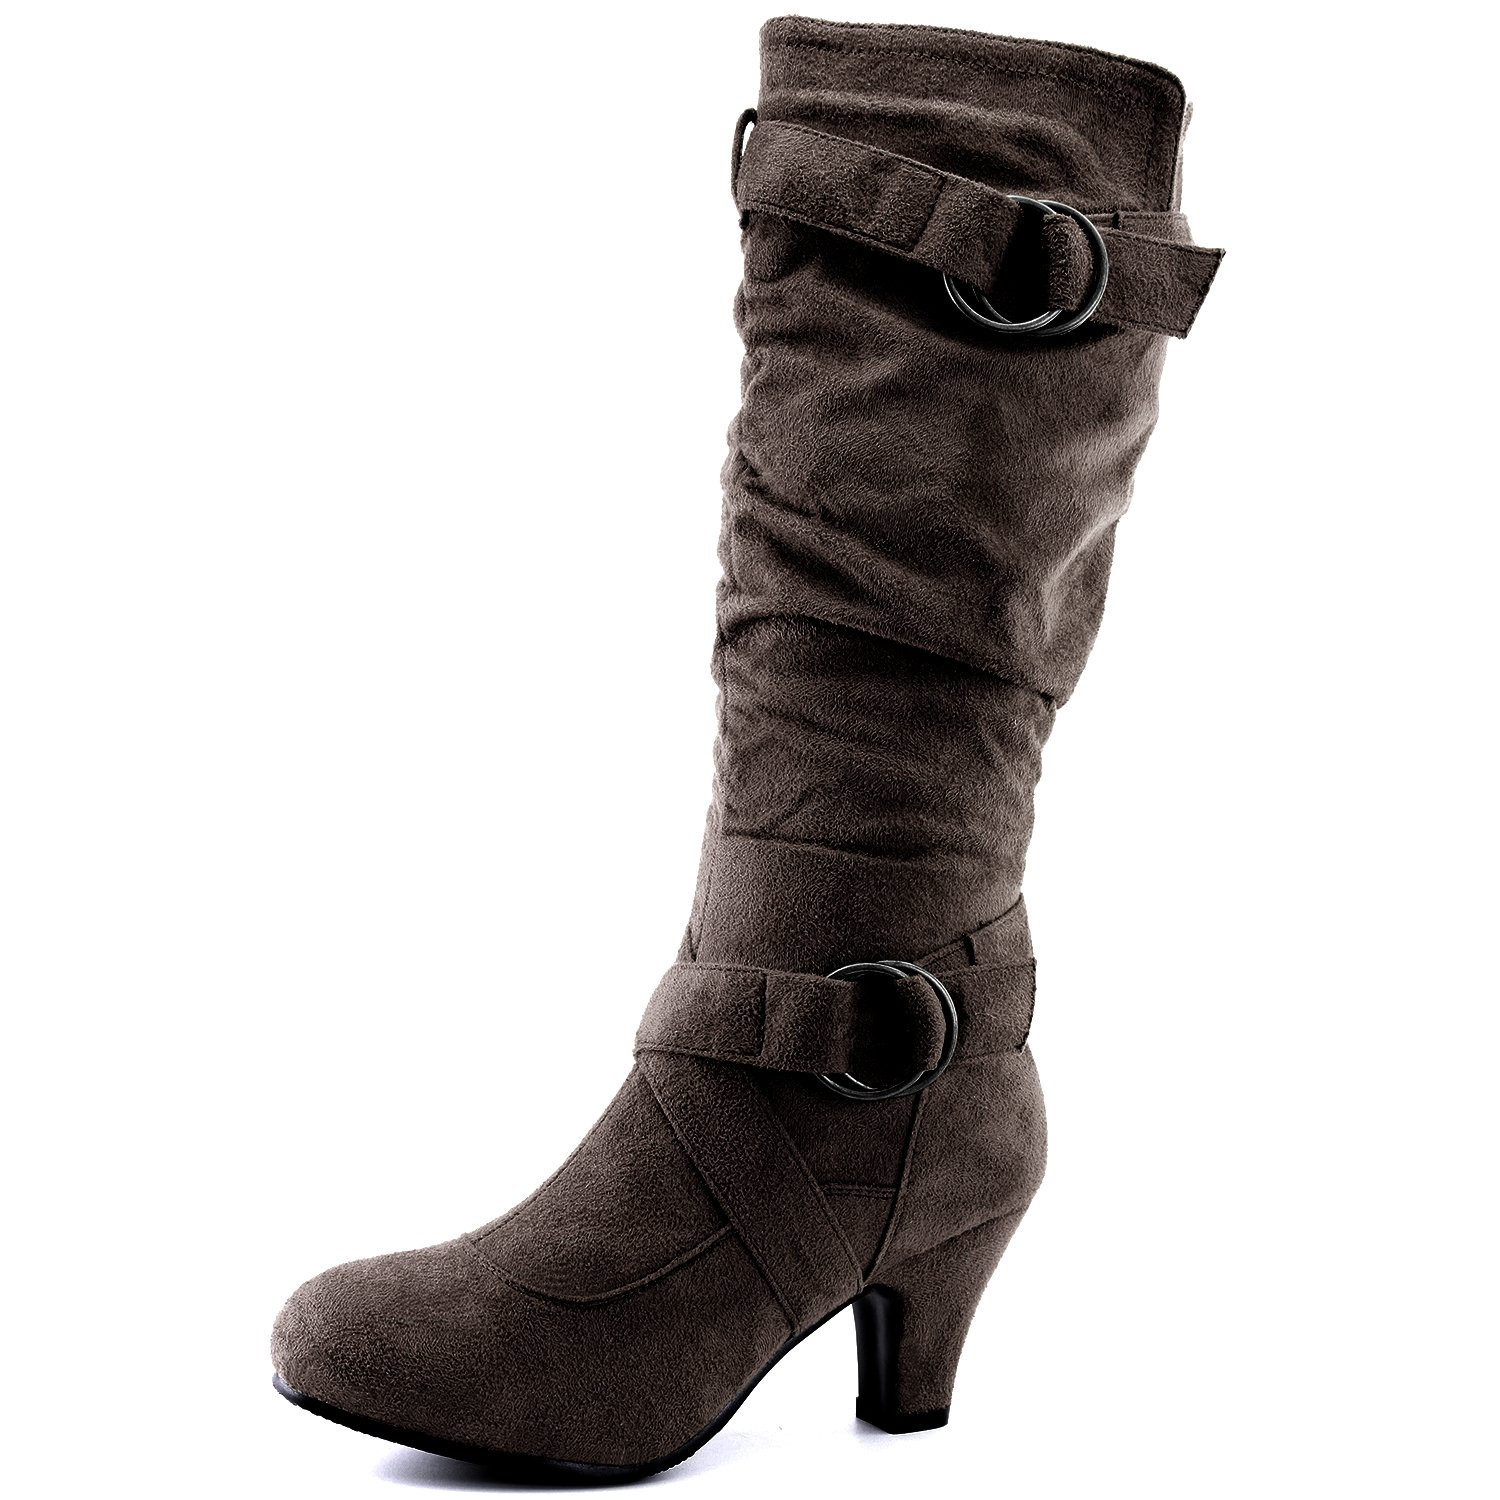 Dailyshoes Women's Slouchy Mid Calf Strappy Boots with Ankle and Top Straps - 2'' Heel Fashion Boots,10 B(M) US,Brown SV w/Side Pocket